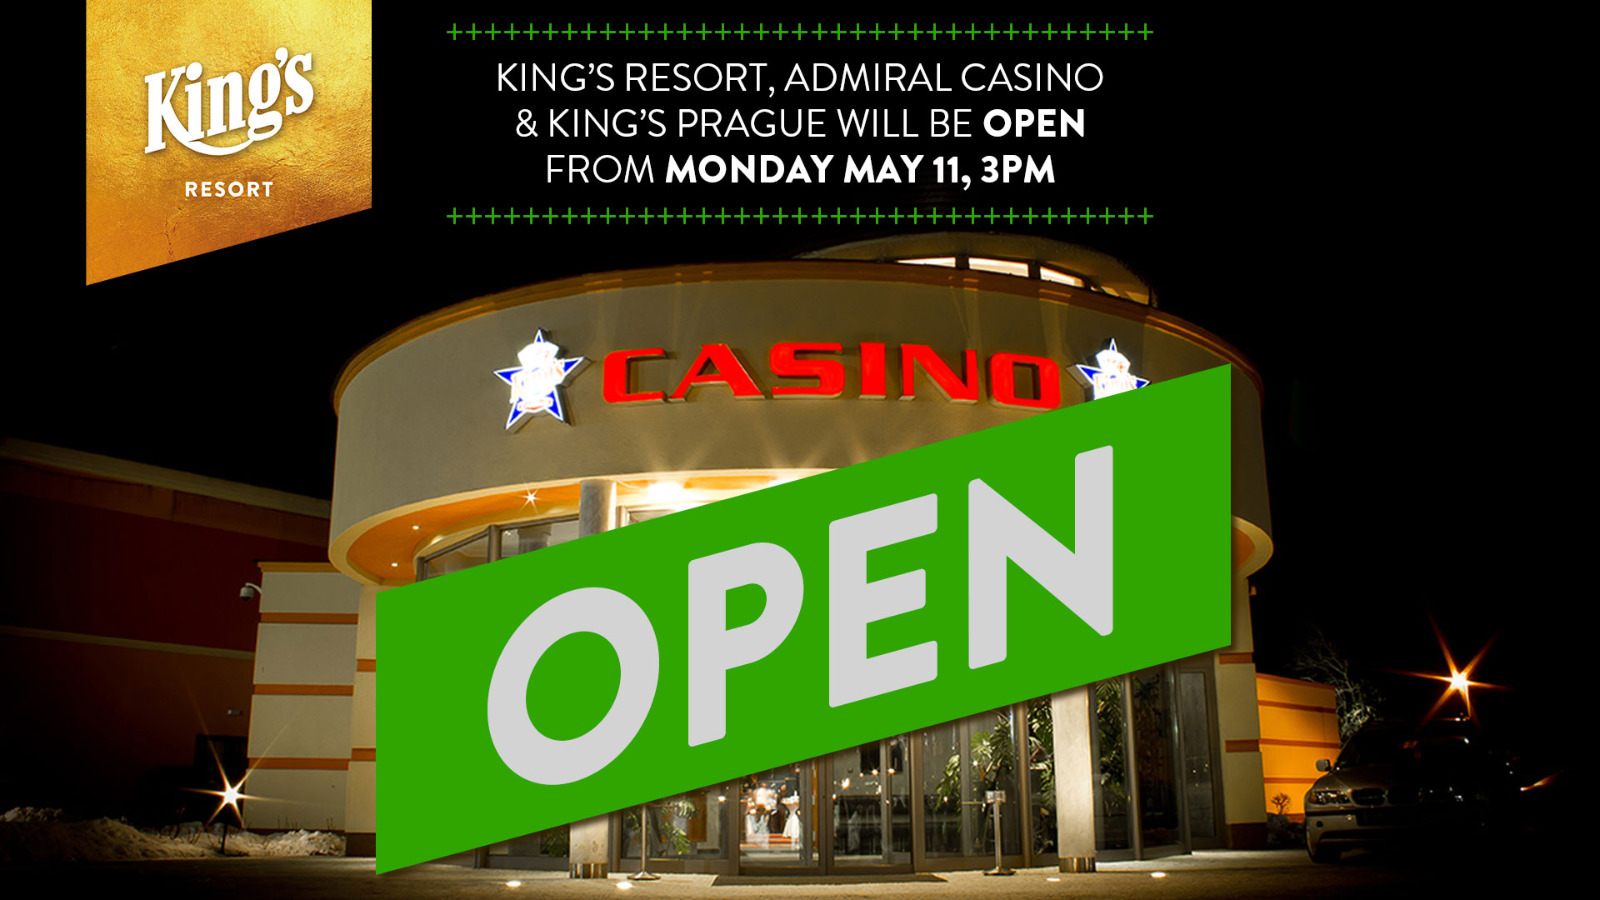 King's Resort Rozvadov and King's Casino Prague reopens on 11 May